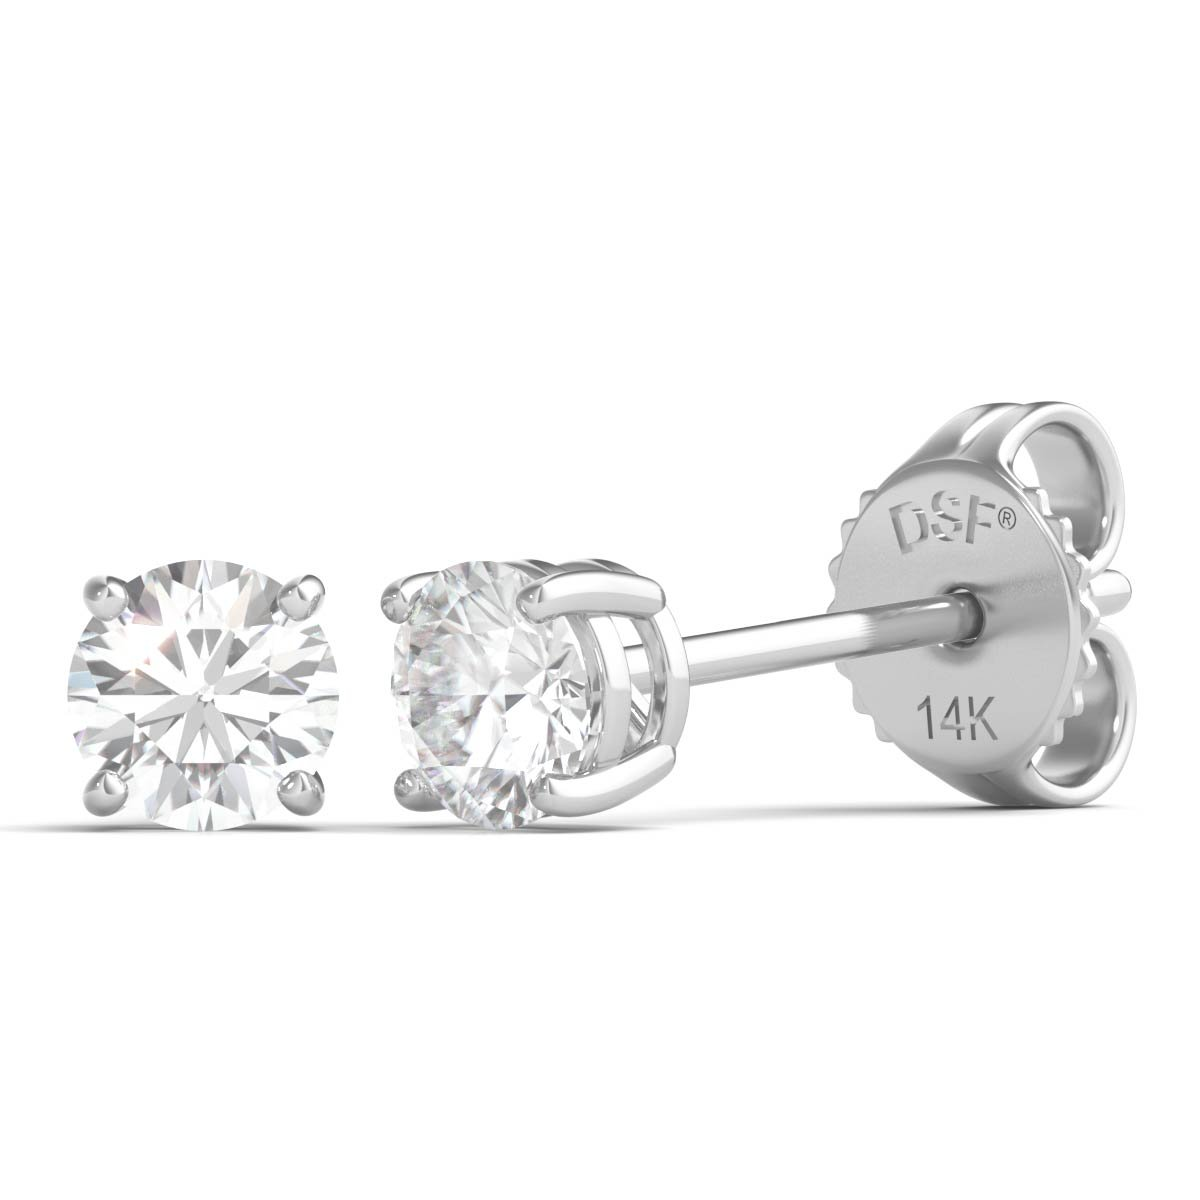 Diamond Studs Forever Solitaire Diamond Earrings (1/3 Ct tw, AGS Certified GH/I2-I3) White Gold